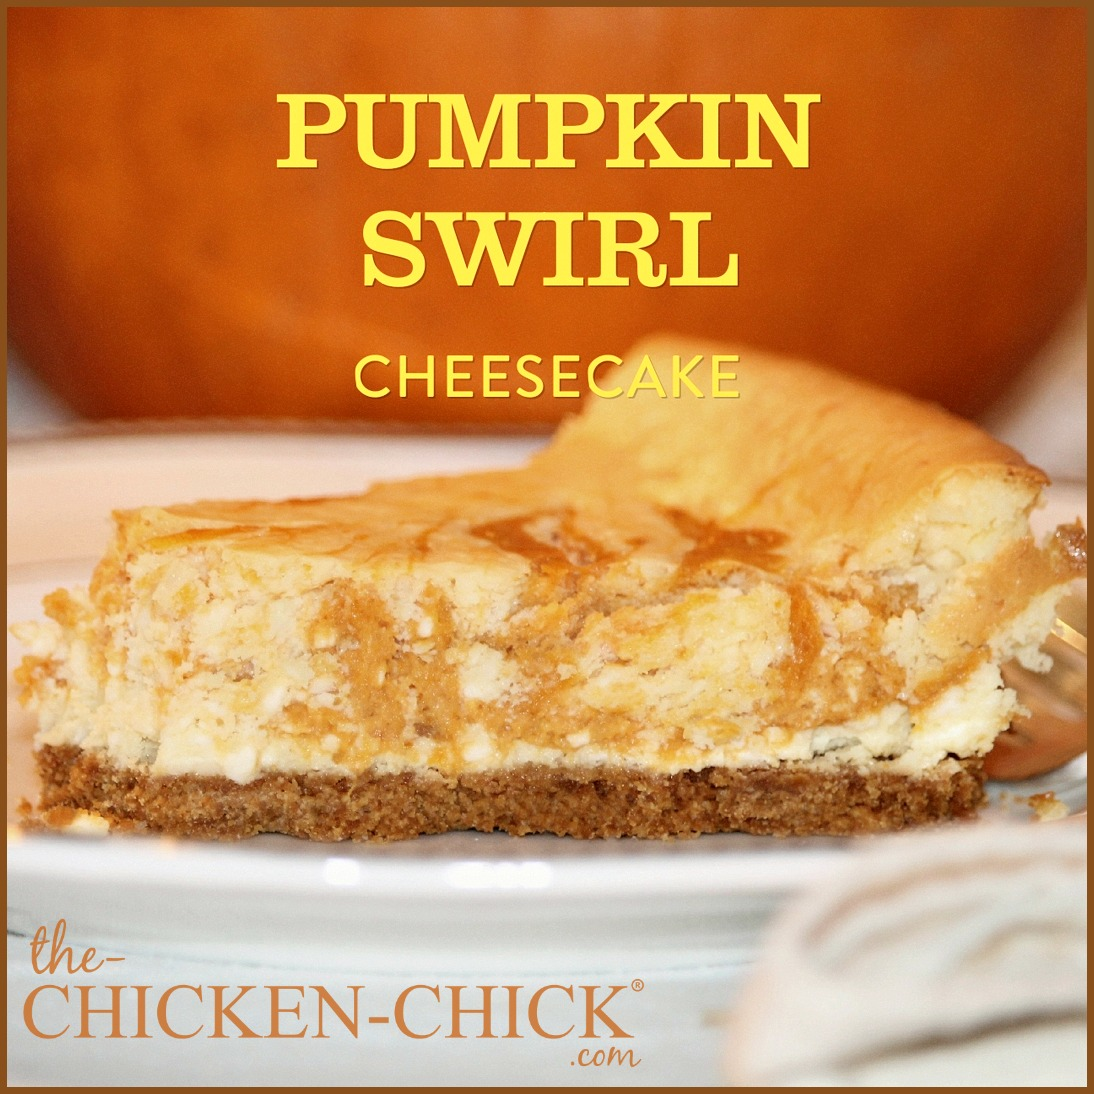 ... pumpkin swirl cheesecake is a decadent dessert that's sure to become a